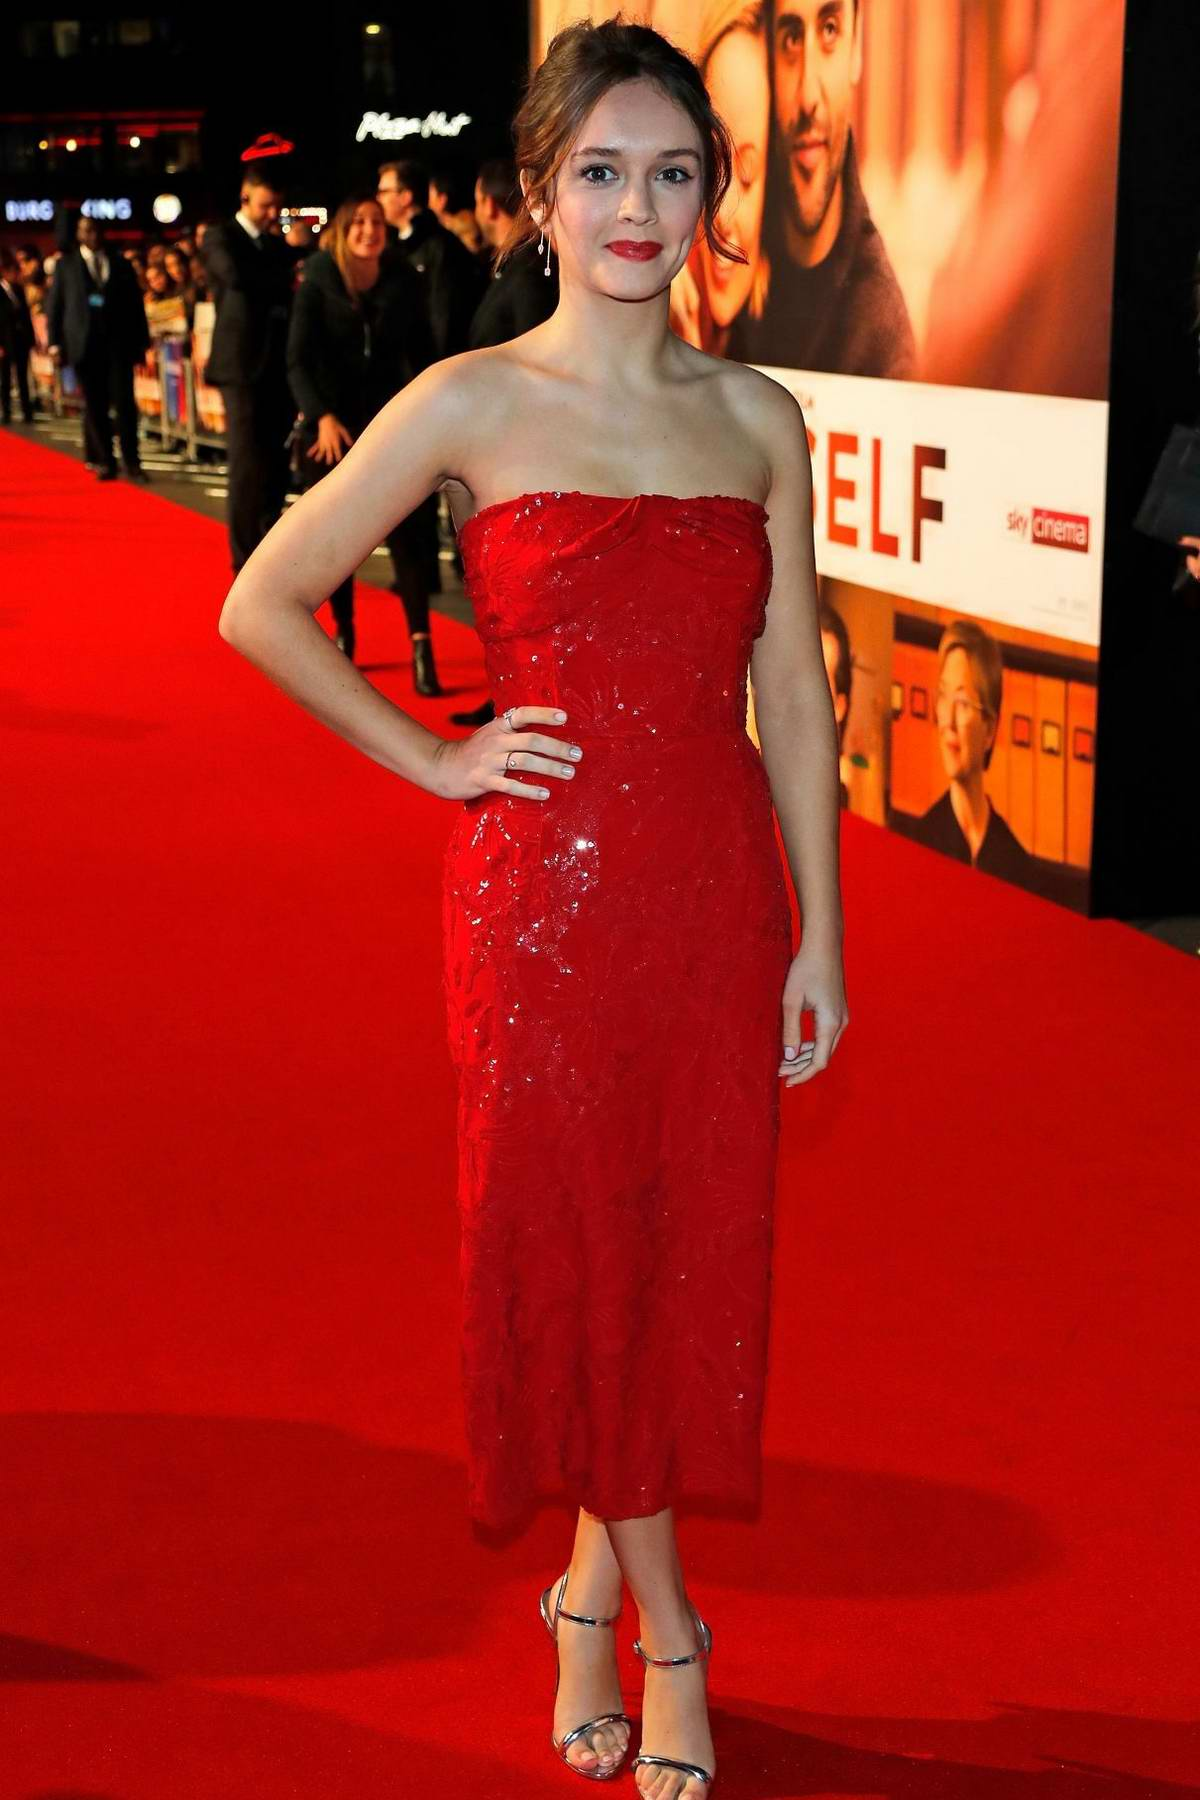 Olivia Cooke attends 'Life Itself' European Premiere during the 62nd BFI London Film Festival in London, UK